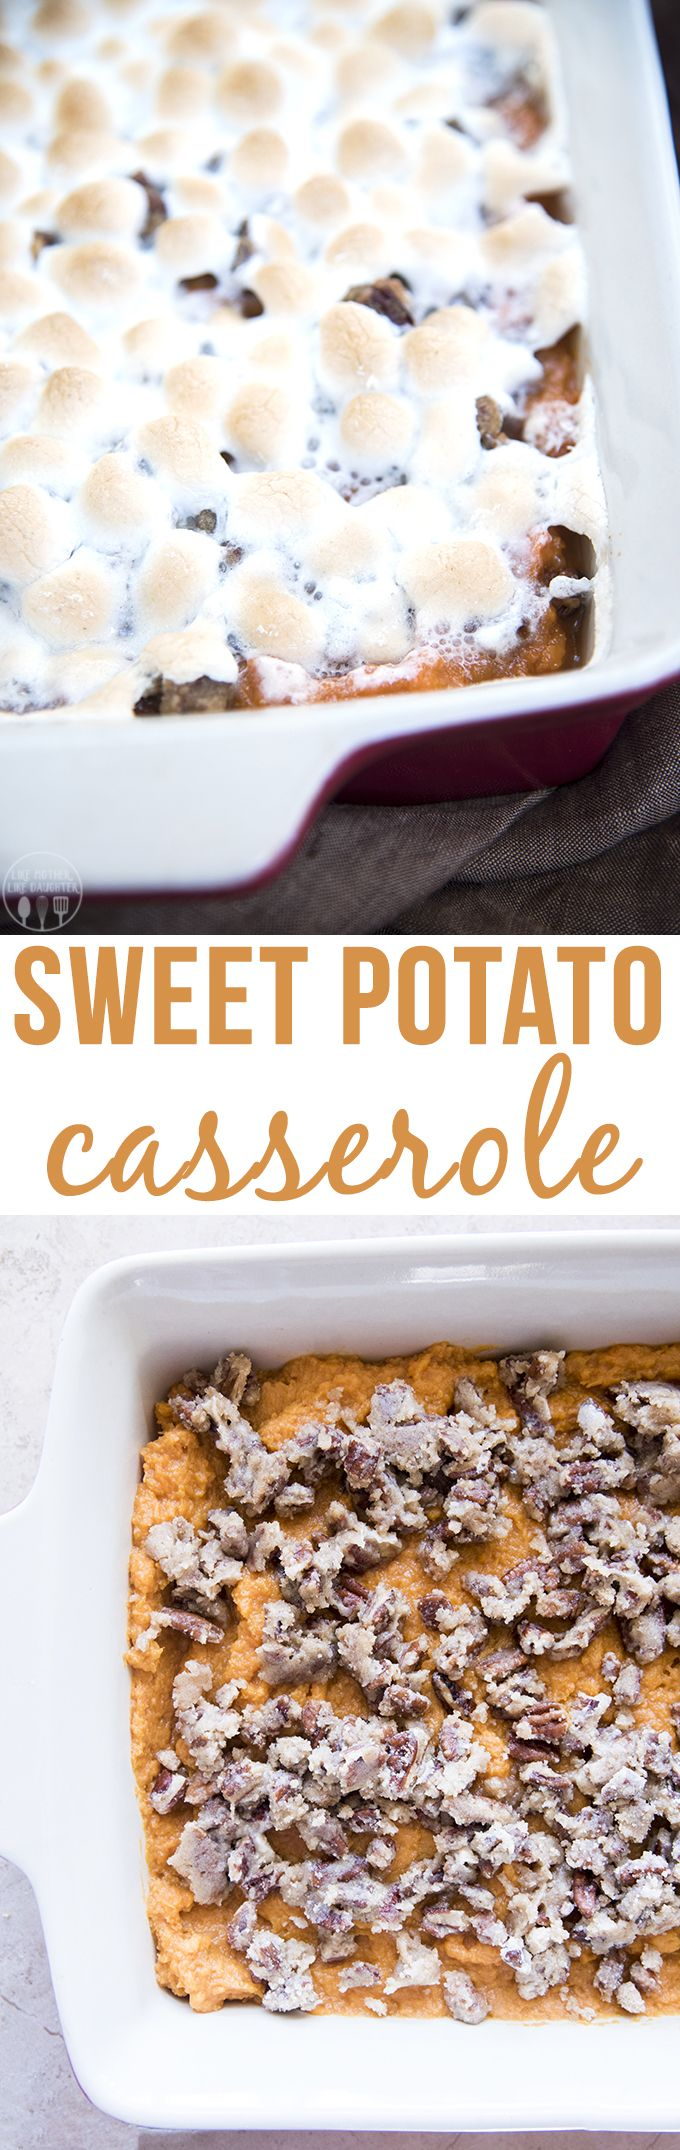 This is the best sweet potato casserole and the perfect addition to your Thanksgiving dinner! Its topped with caramelized pecans that add the perfect crunch taking it to the next level!